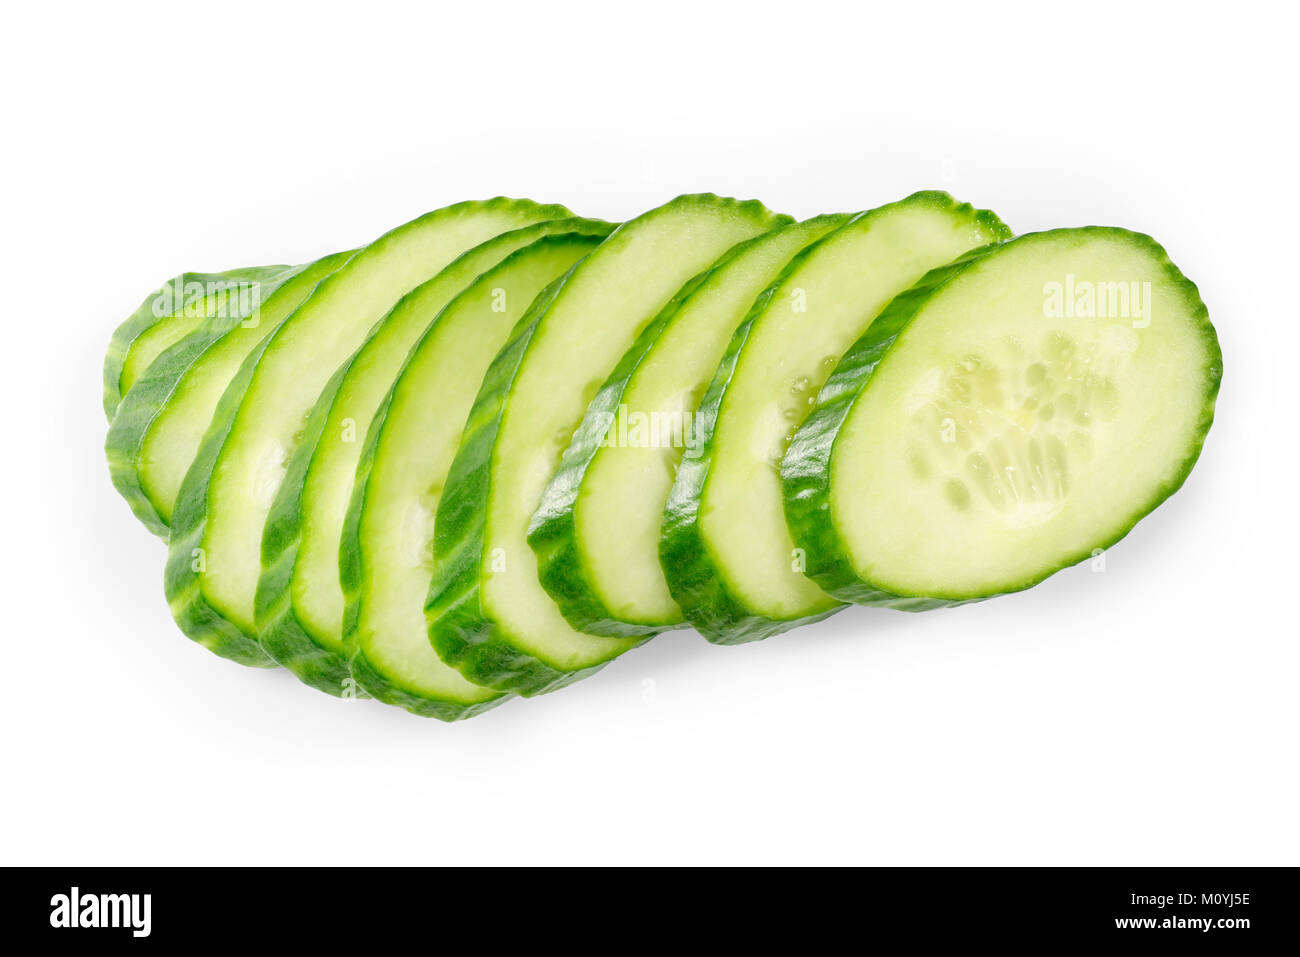 Green cucumber slices isolated on white - Stock Image